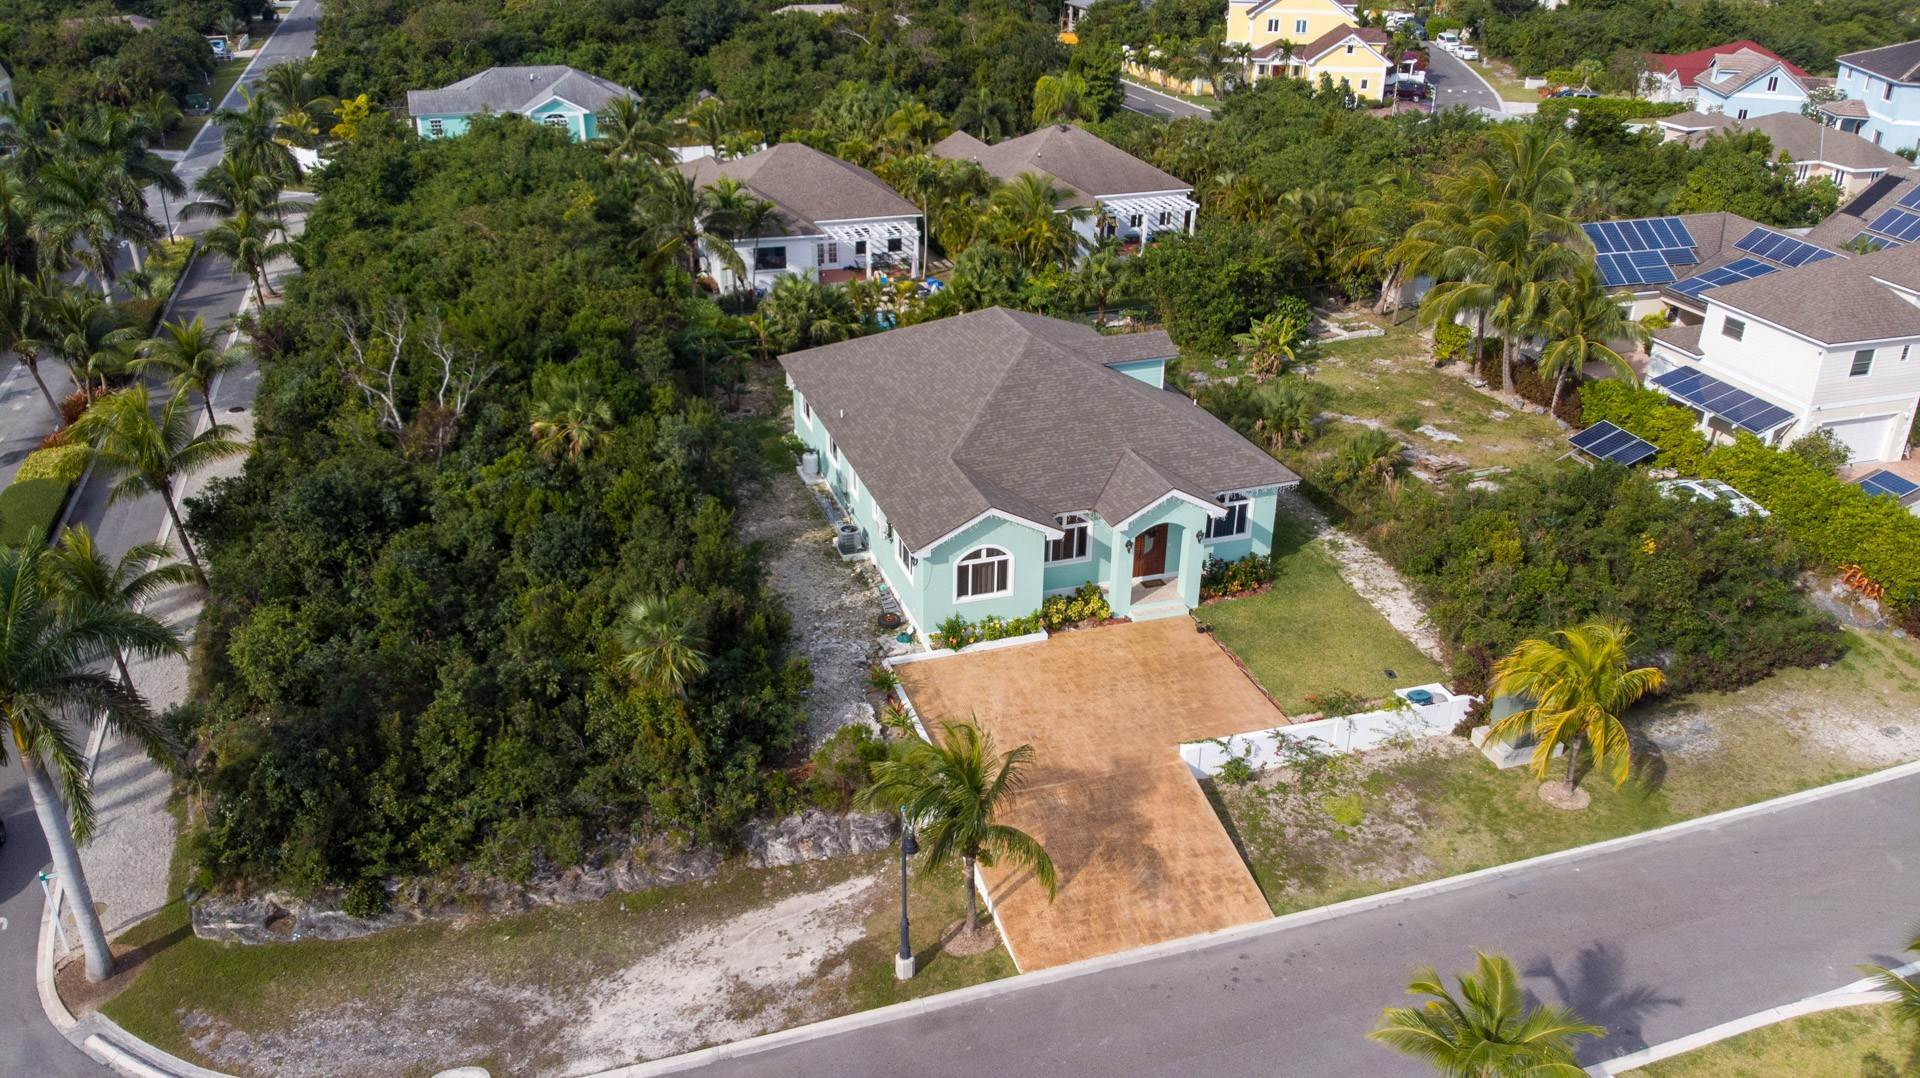 36. Single Family Homes for Sale at Villa Greenway House for Sale - MLS 41427 Charlotteville, Nassau And Paradise Island, Bahamas